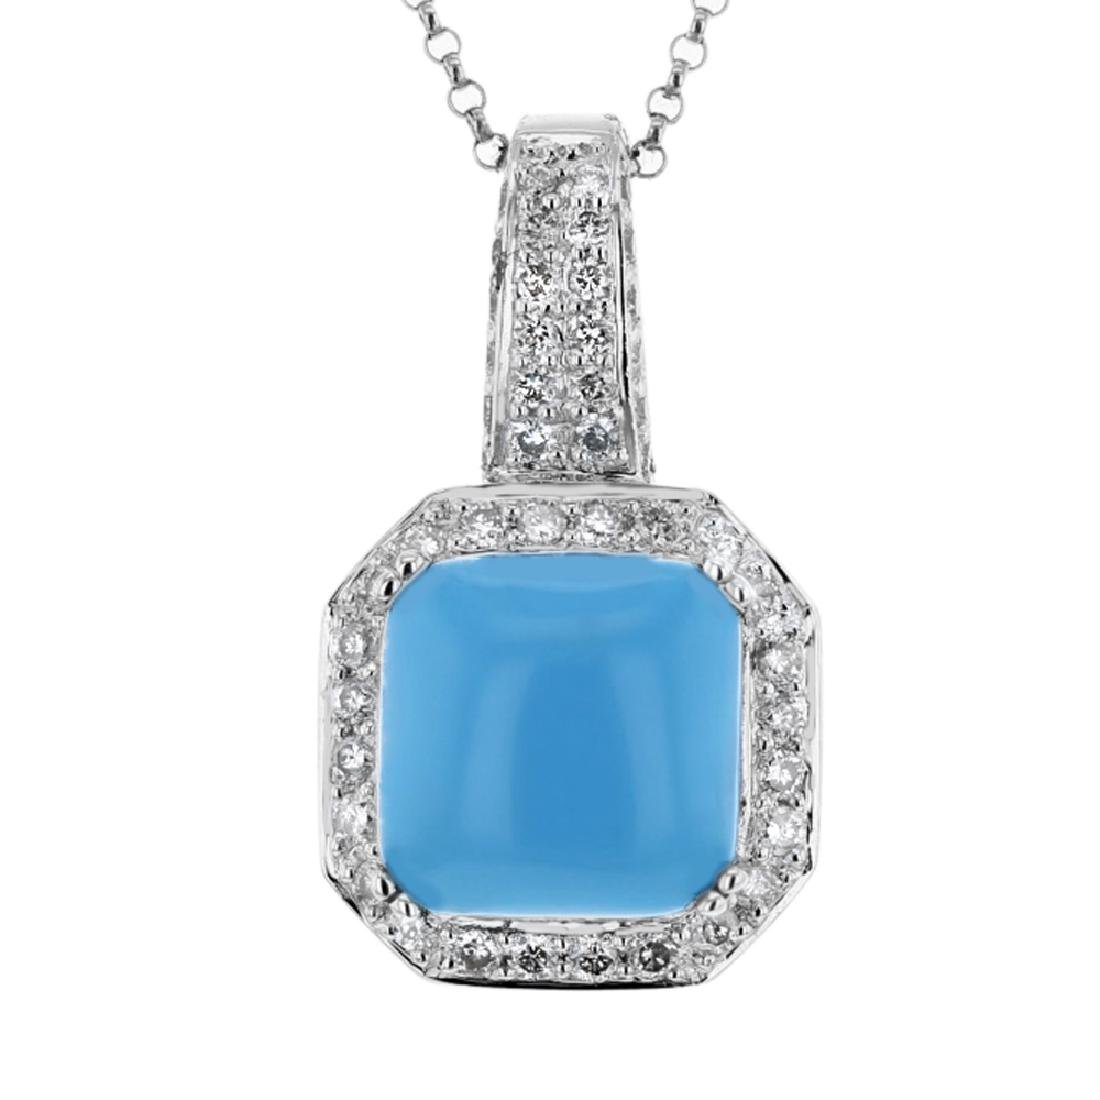 14KT White Gold 5.96ct Turquoise and Diamond Pendant